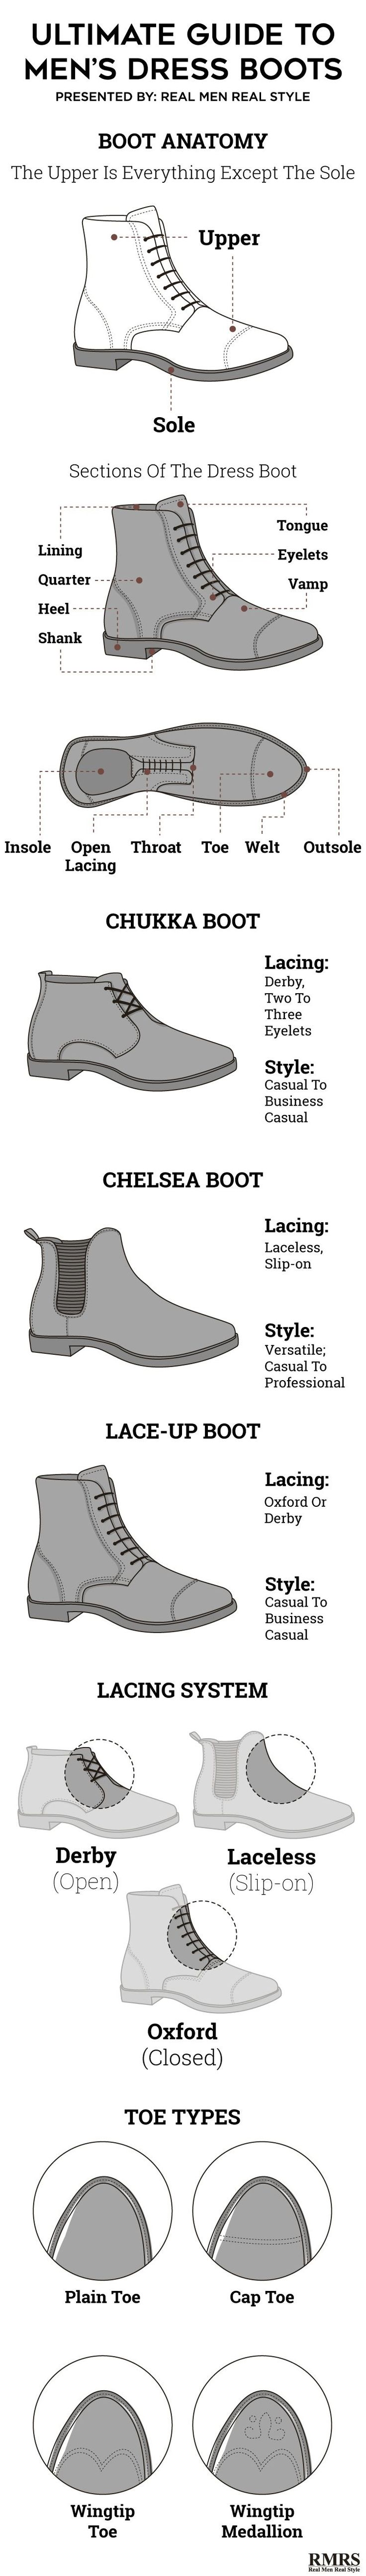 Ultimate Guide To Dress Boots For Men Infographic